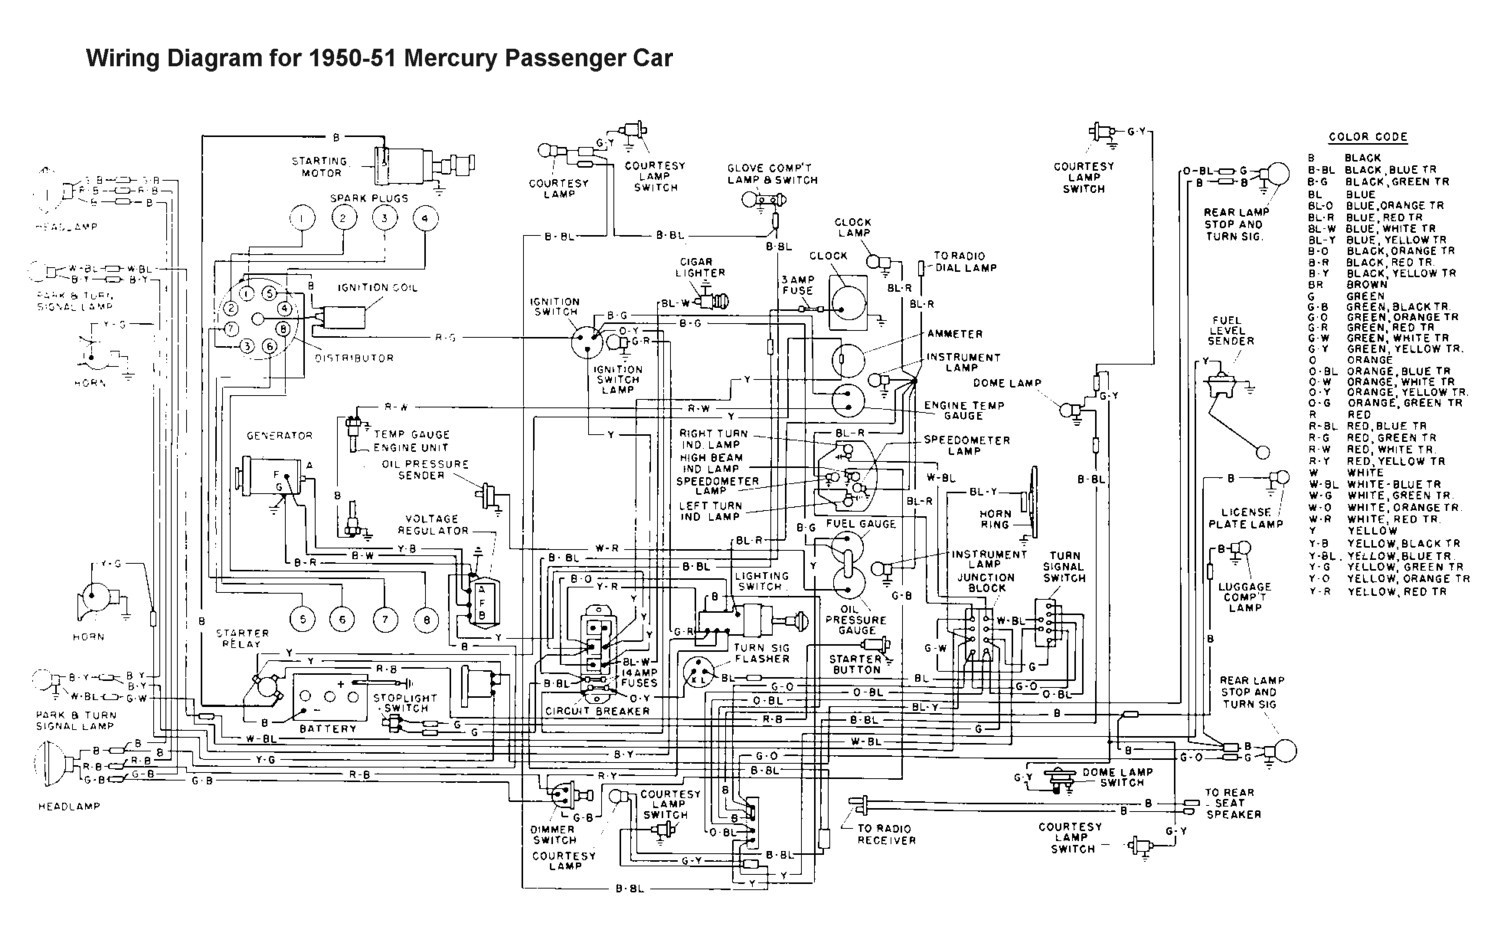 ford wiring schematic wiring diagram1942 ford wiring diagram wiring diagram writeflathead electrical wiring diagrams 1947 ford wiring diagram 1942 ford